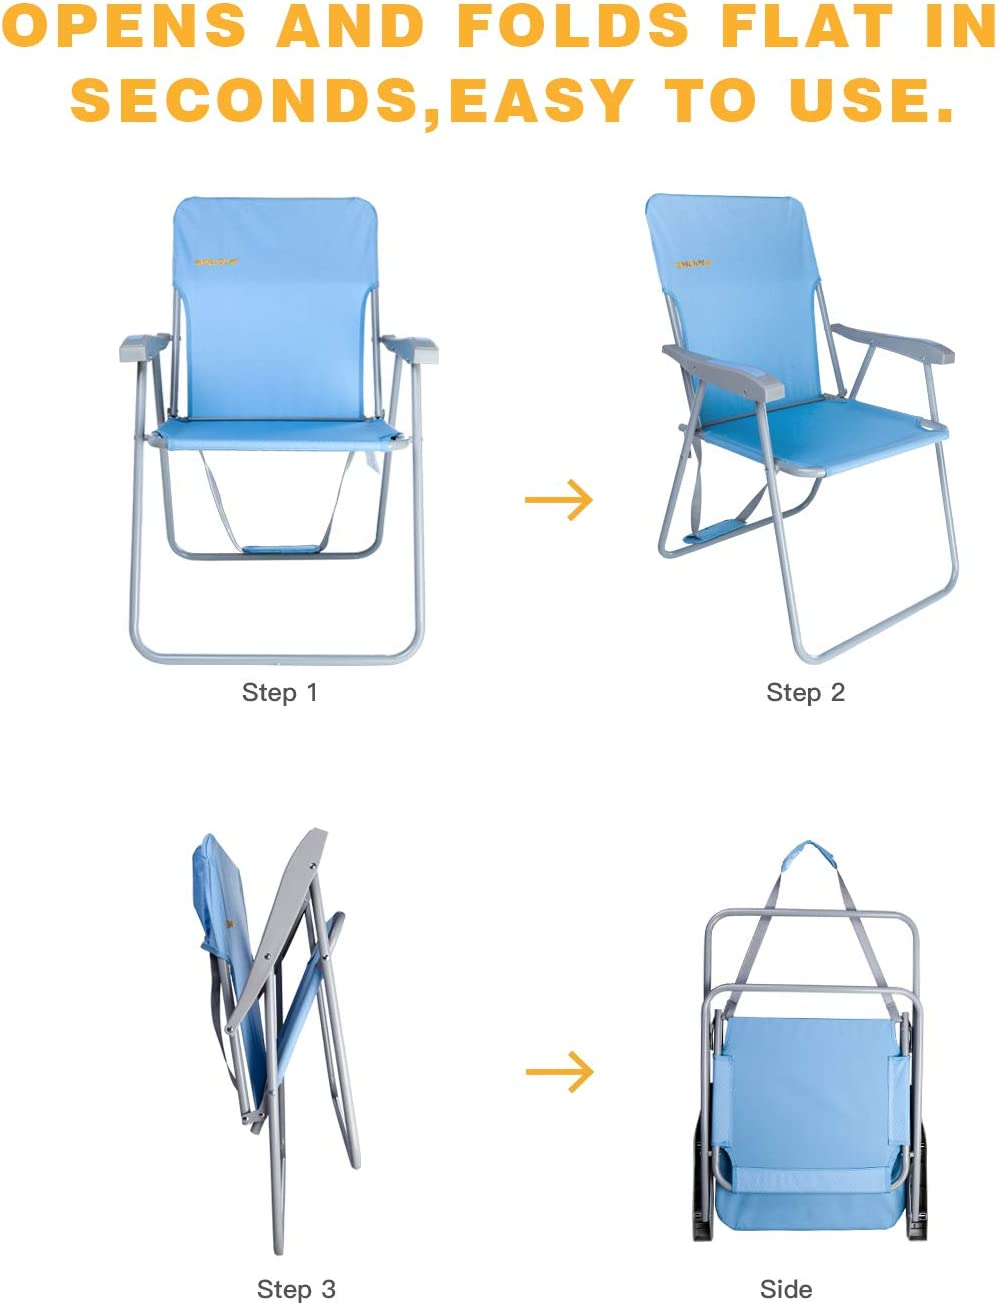 Supports 300 lbs #WEJOY 2-Pack High Back Seat Outdoor Lawn Concert Beach Folding Chair with Hard Arms Shoulder Strap Pocket for Adults Camping Festival Sand